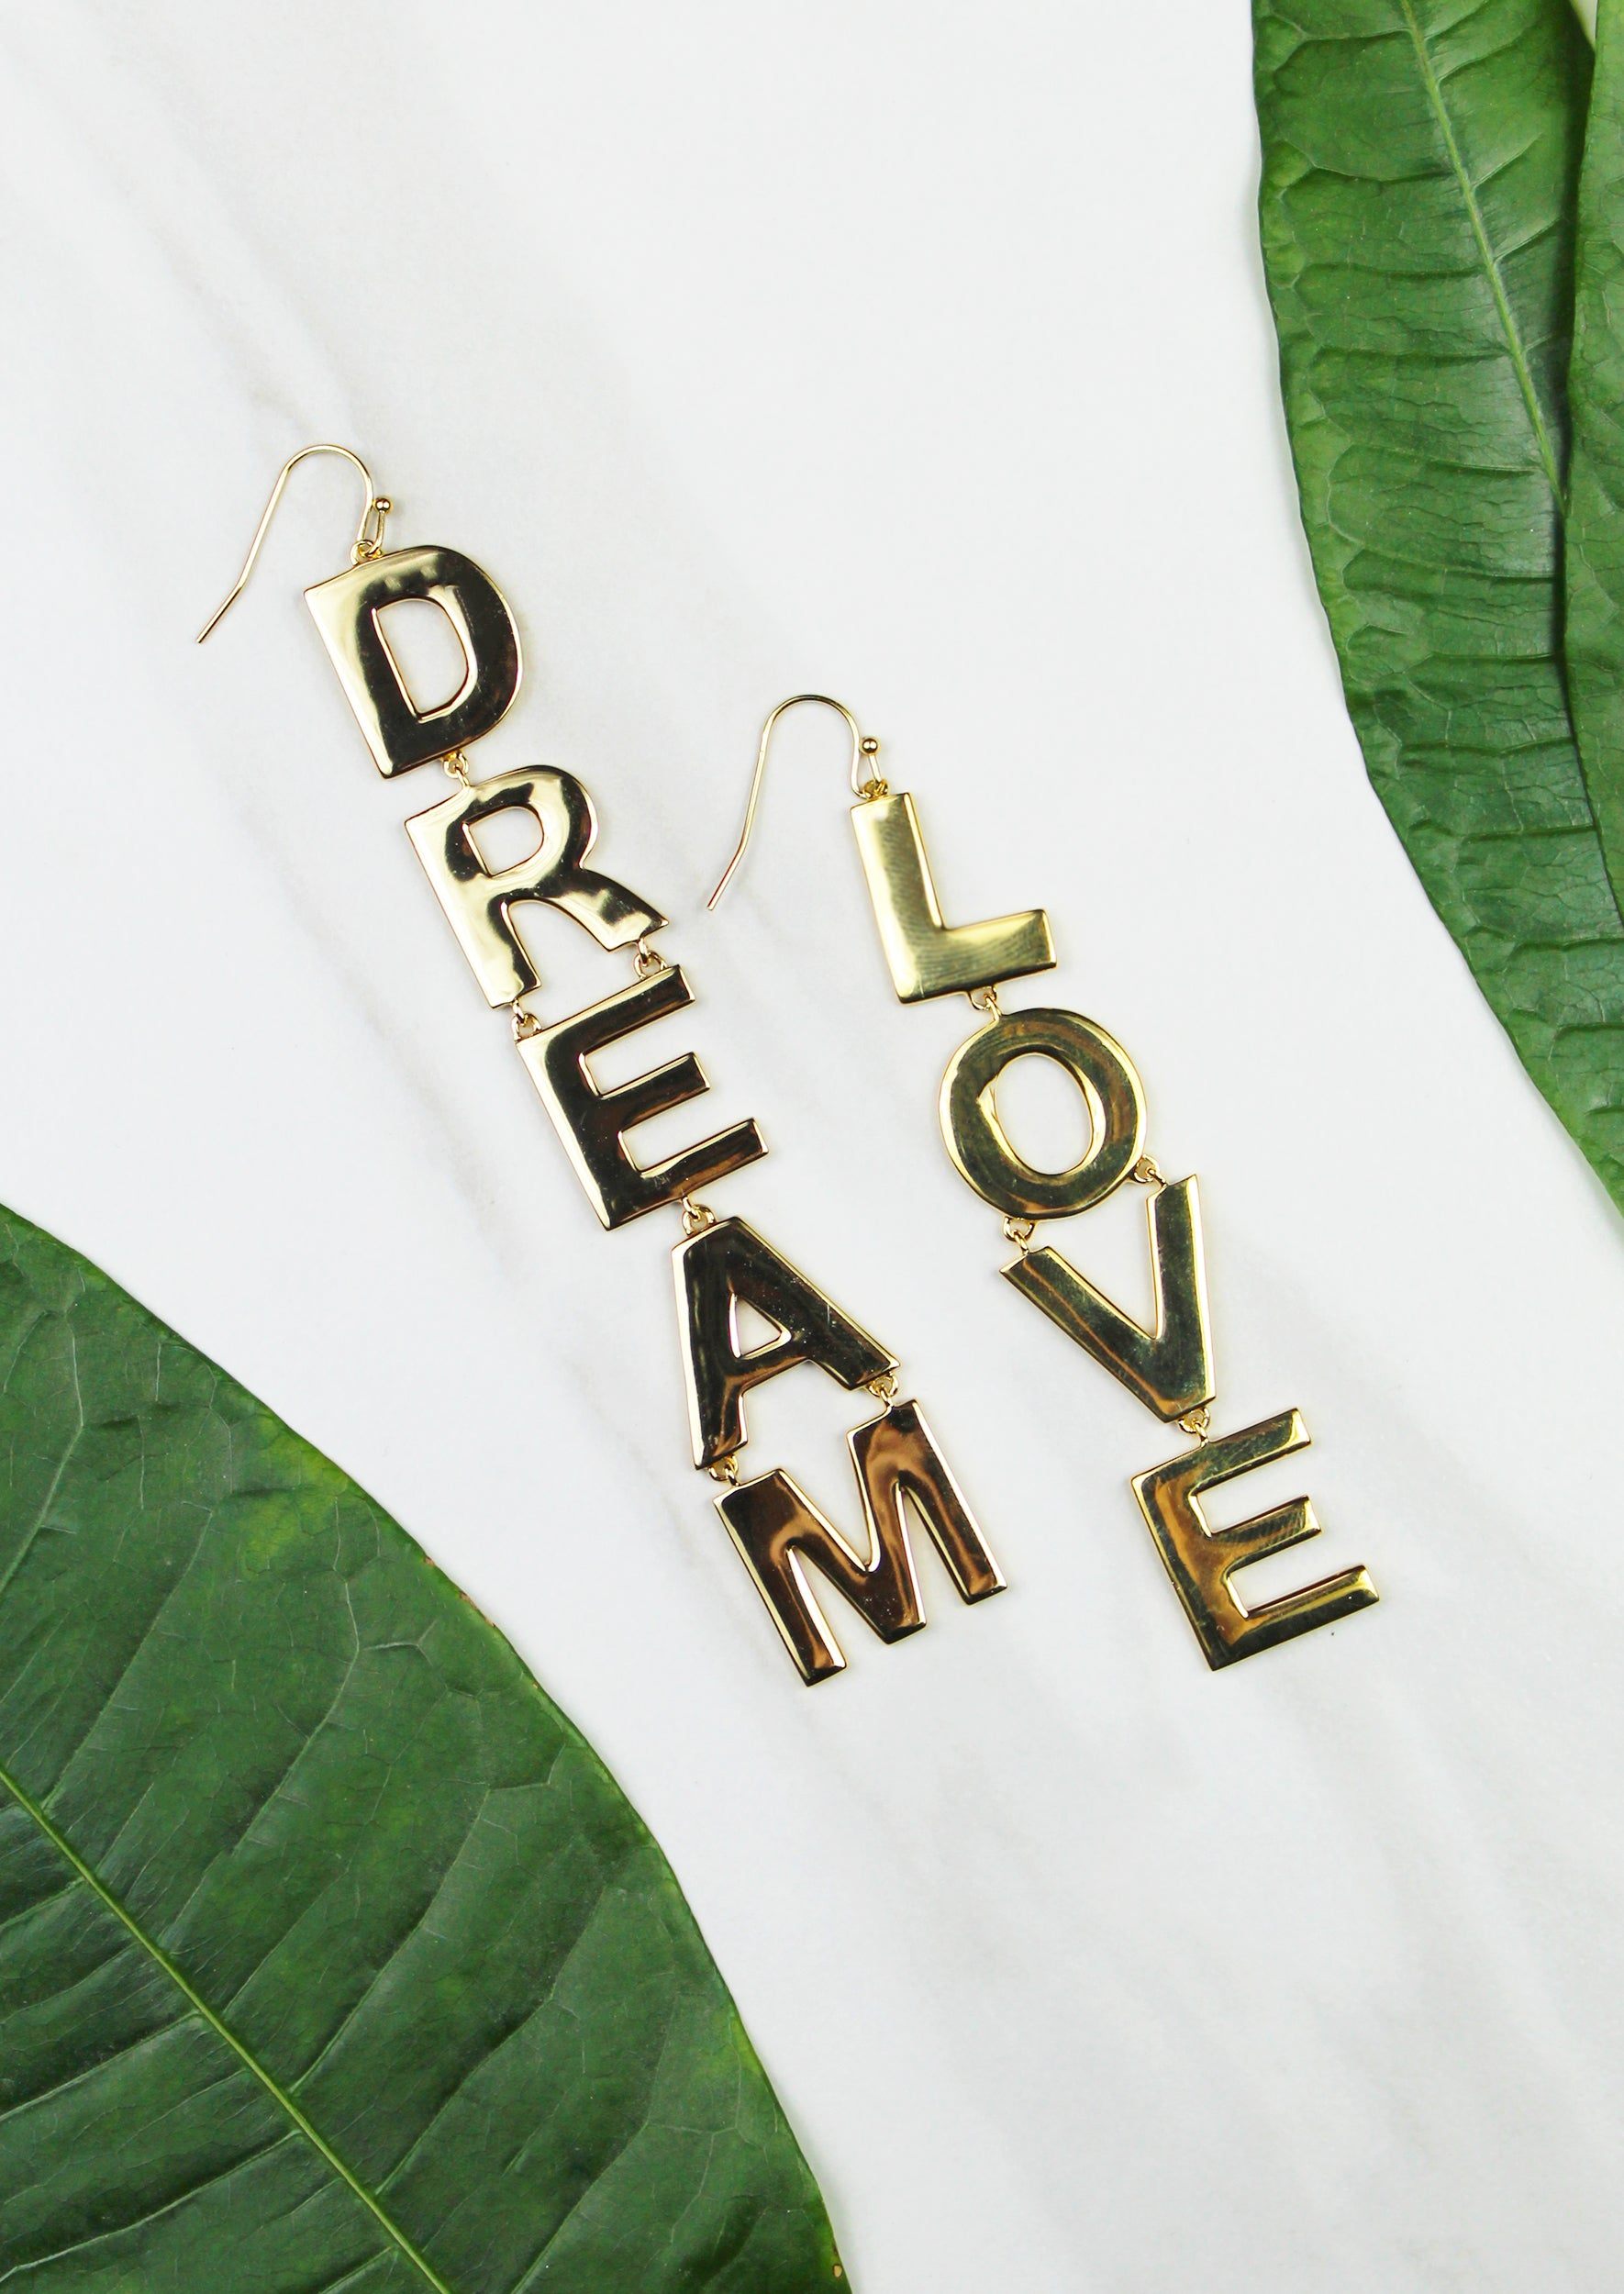 Love & Dream Earring Set - Jules Smith - 14K Gold Plated - Boho Jewelry